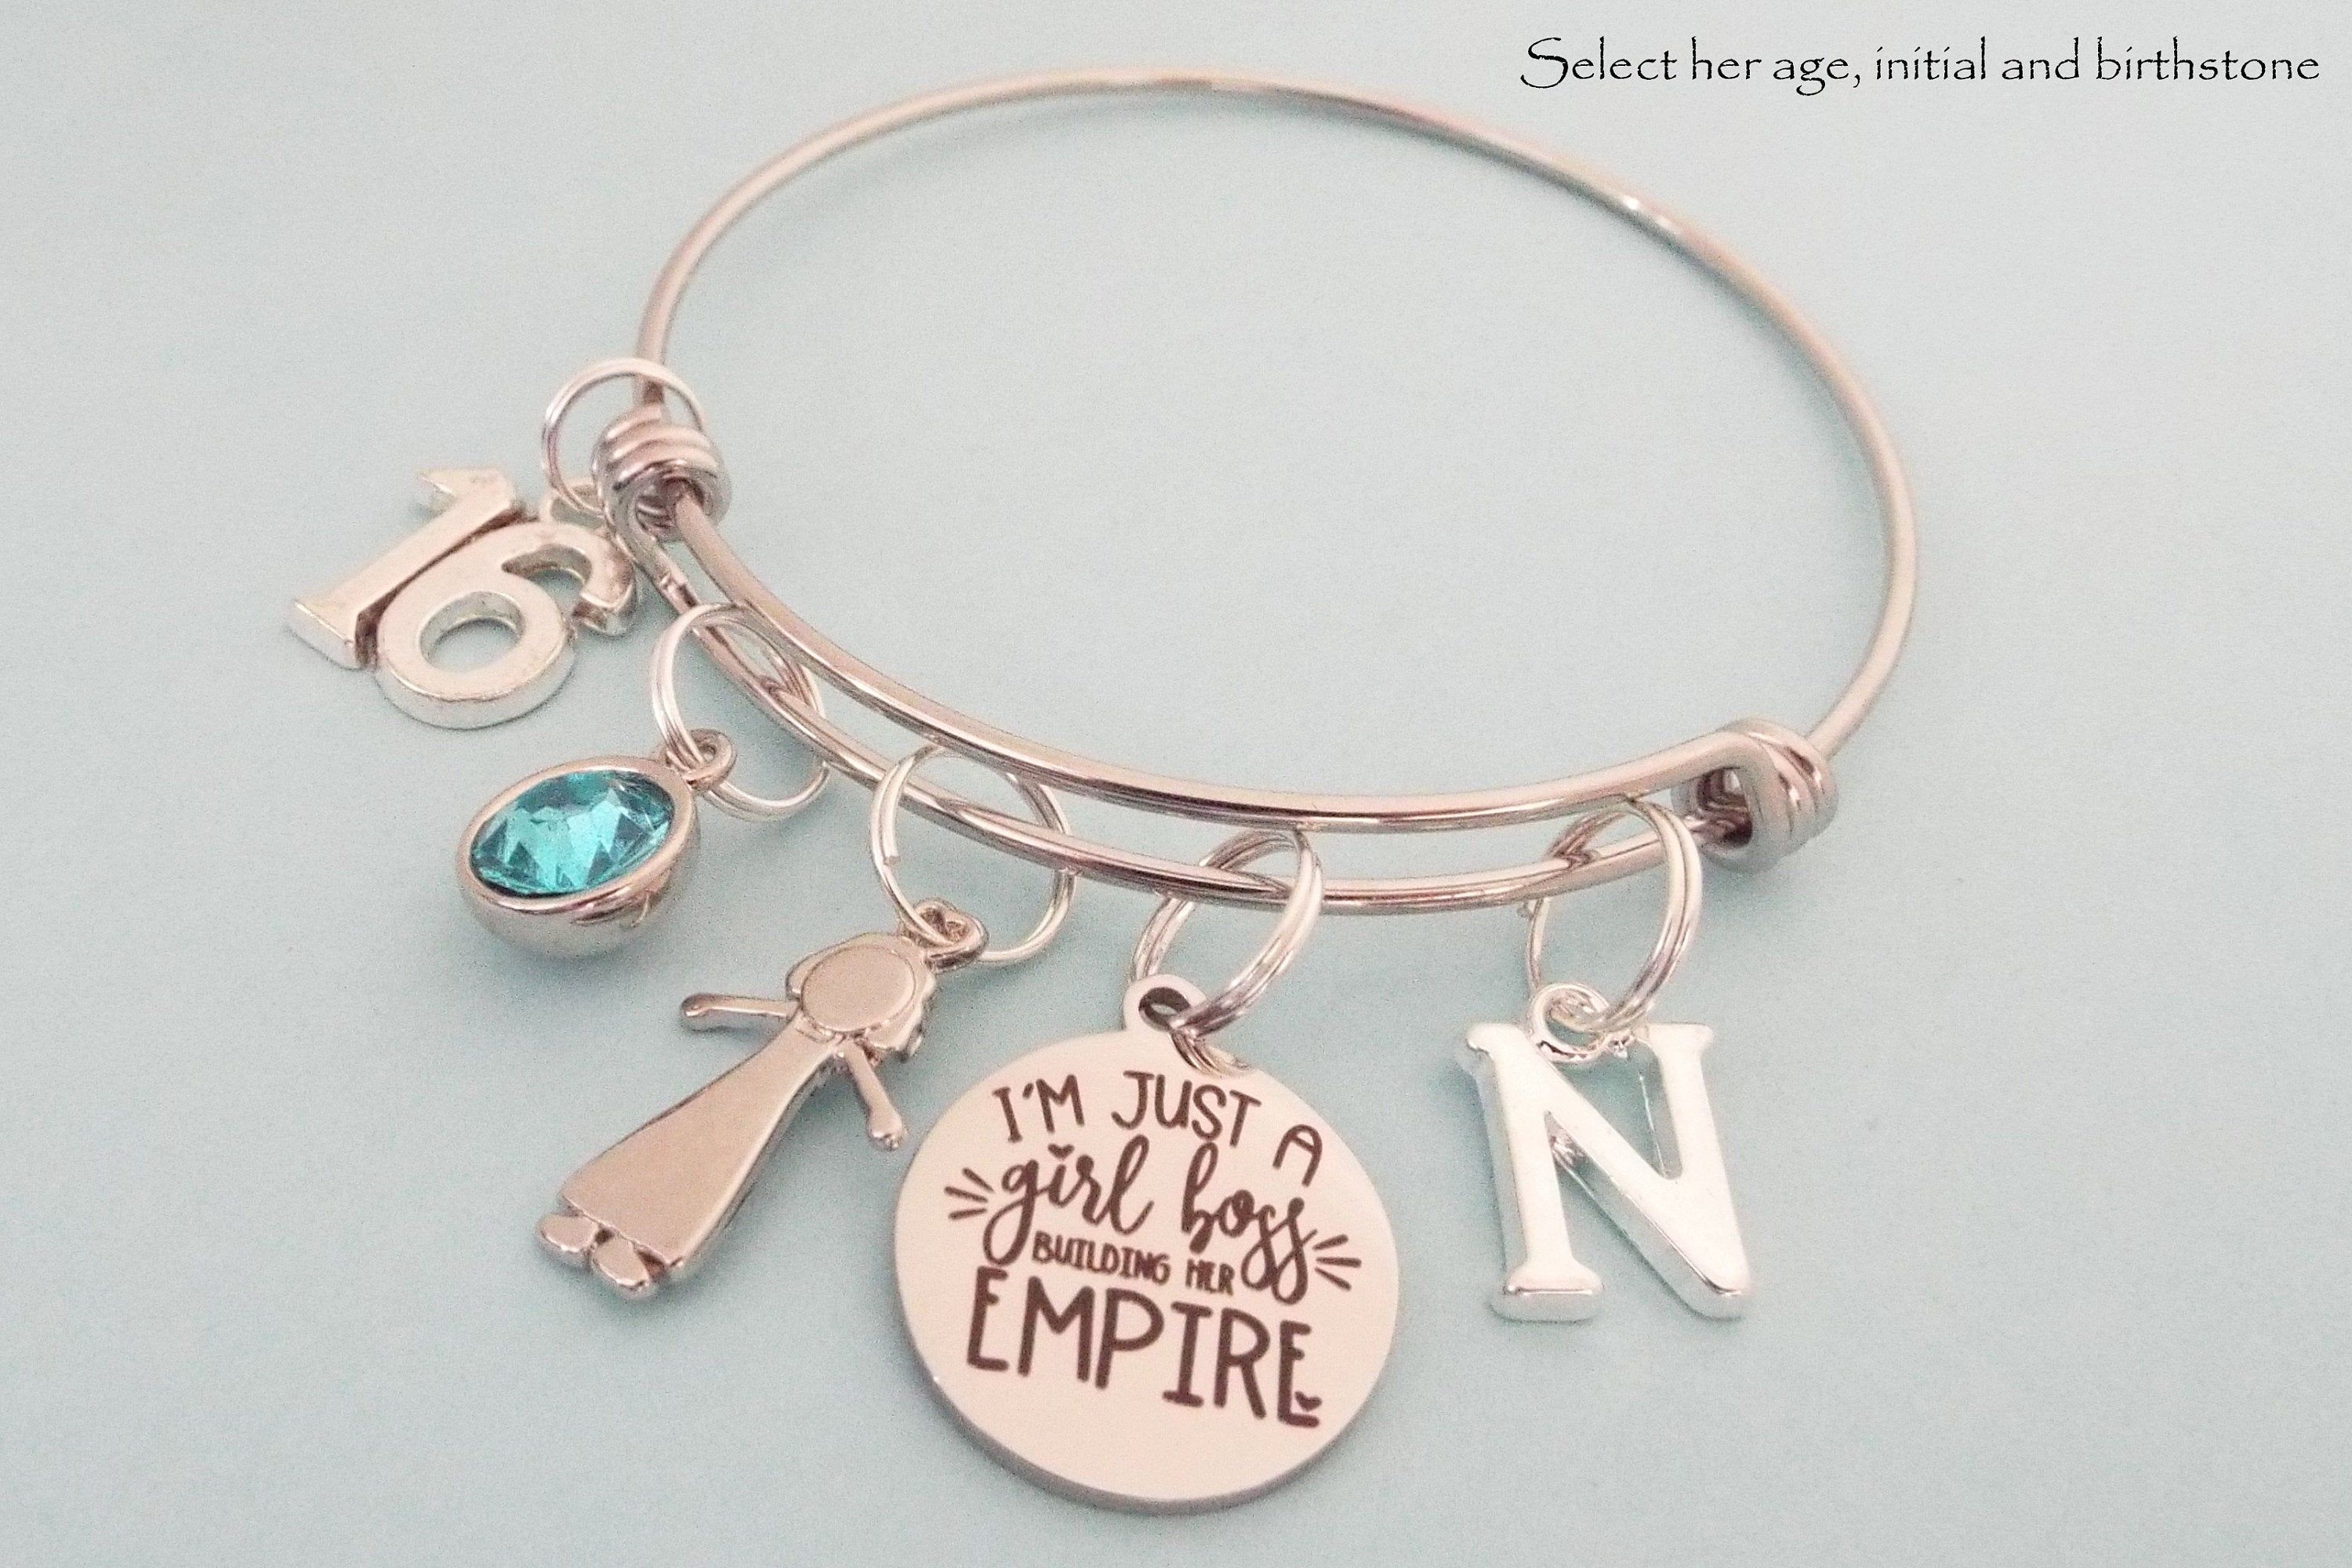 Silver Sweet 16 Jewelry Gifts for Girls Personalized Birthstone /& Initial Sweet 16 Bracelet